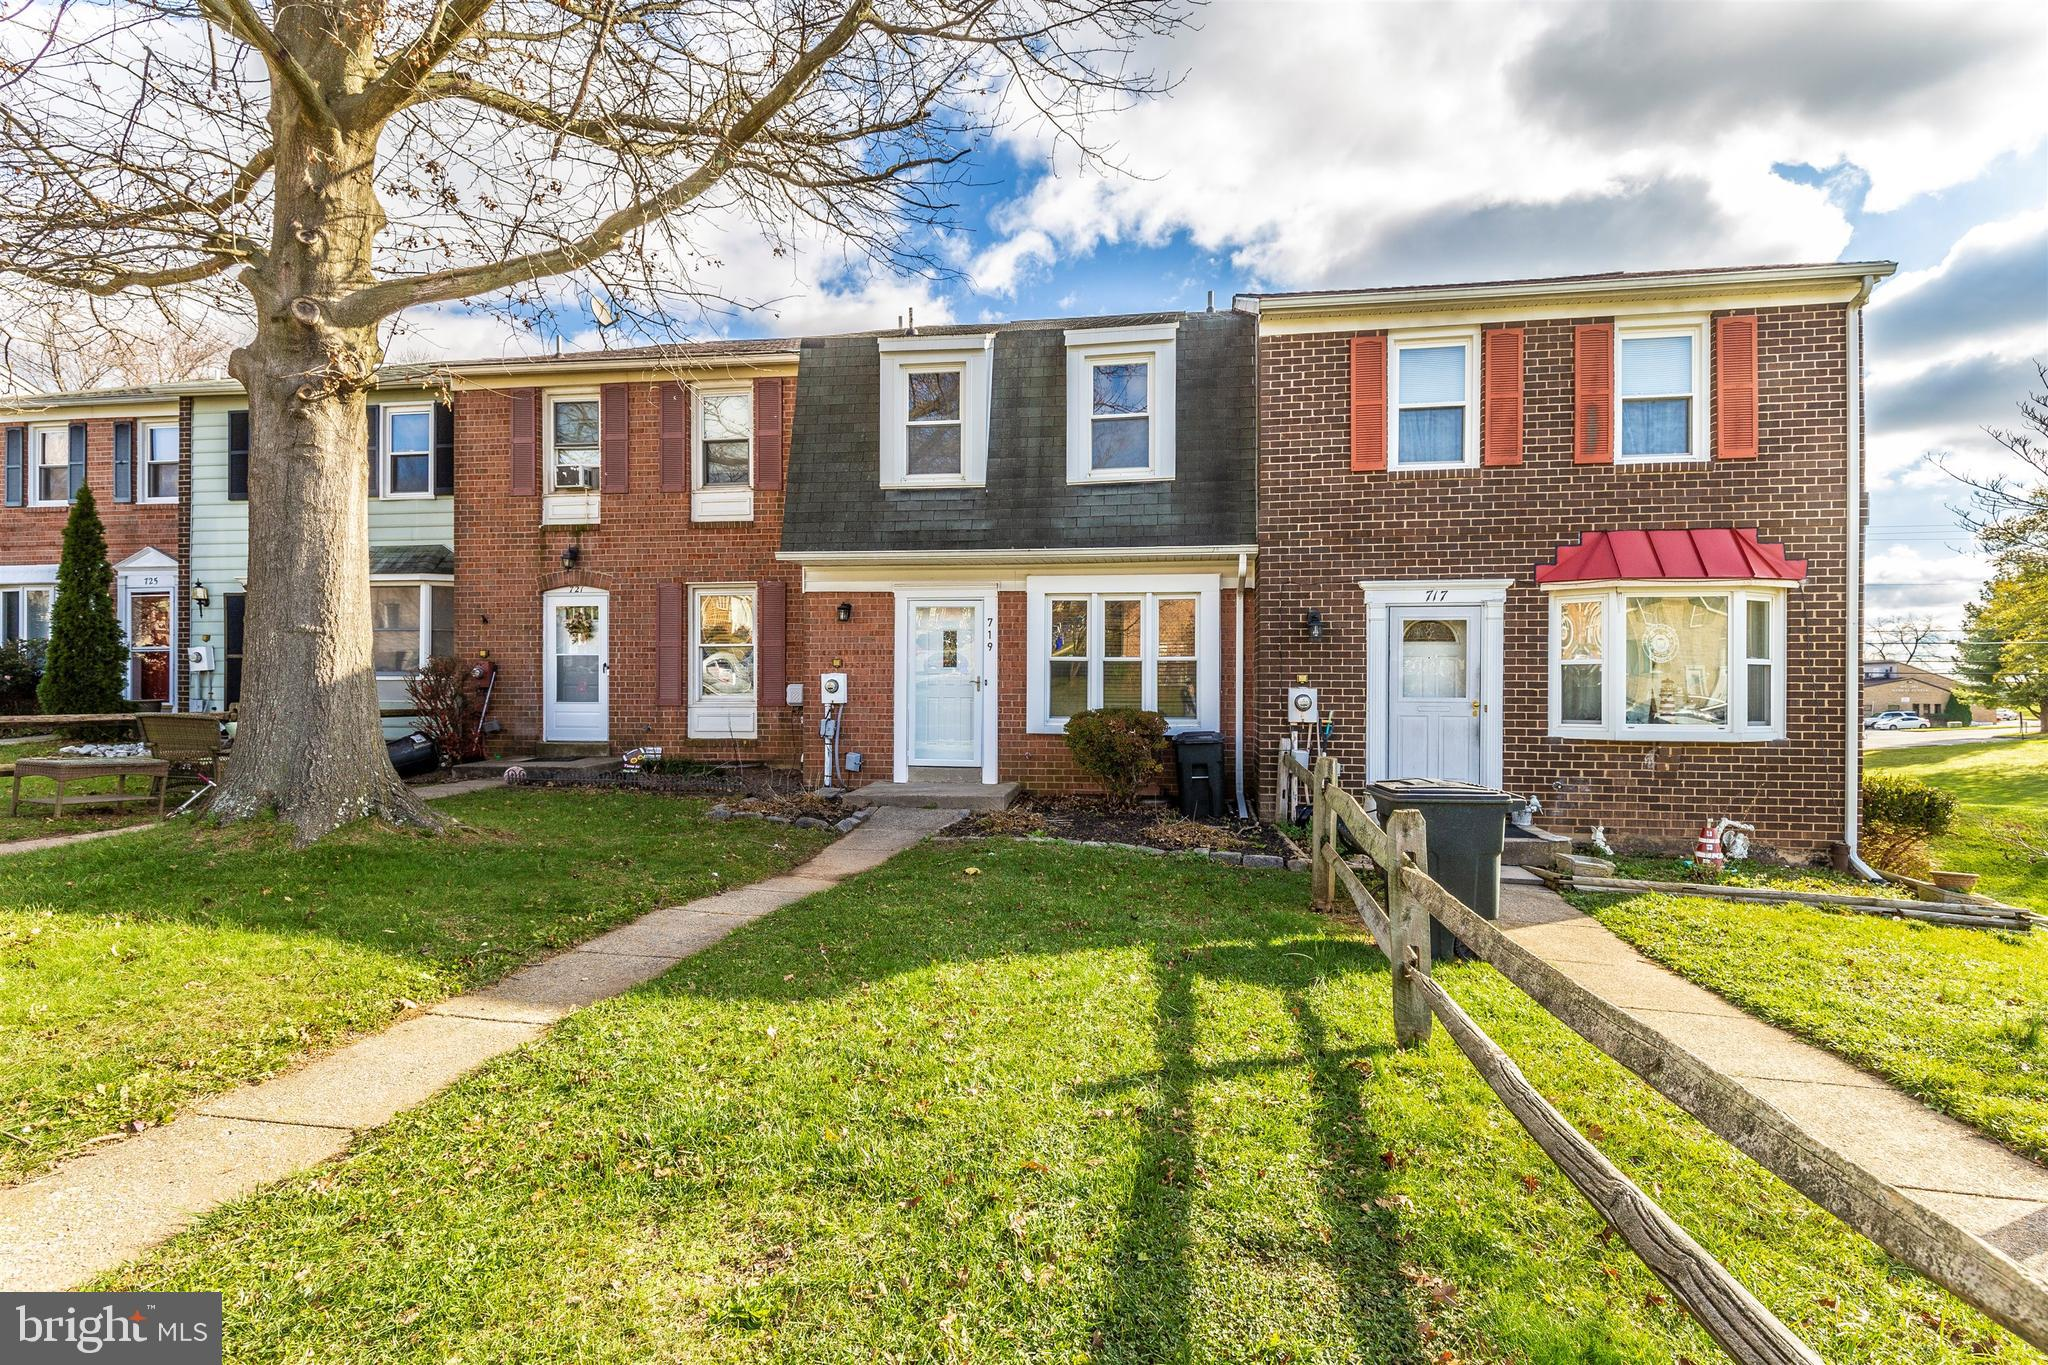 3 BEDROOM, 2.5 BATH BRICK FRONT TOWNHOME IN SOUGHT AFTER FRIENDLY ACRES, MT AIRY. COMMUTER FRIENDLY